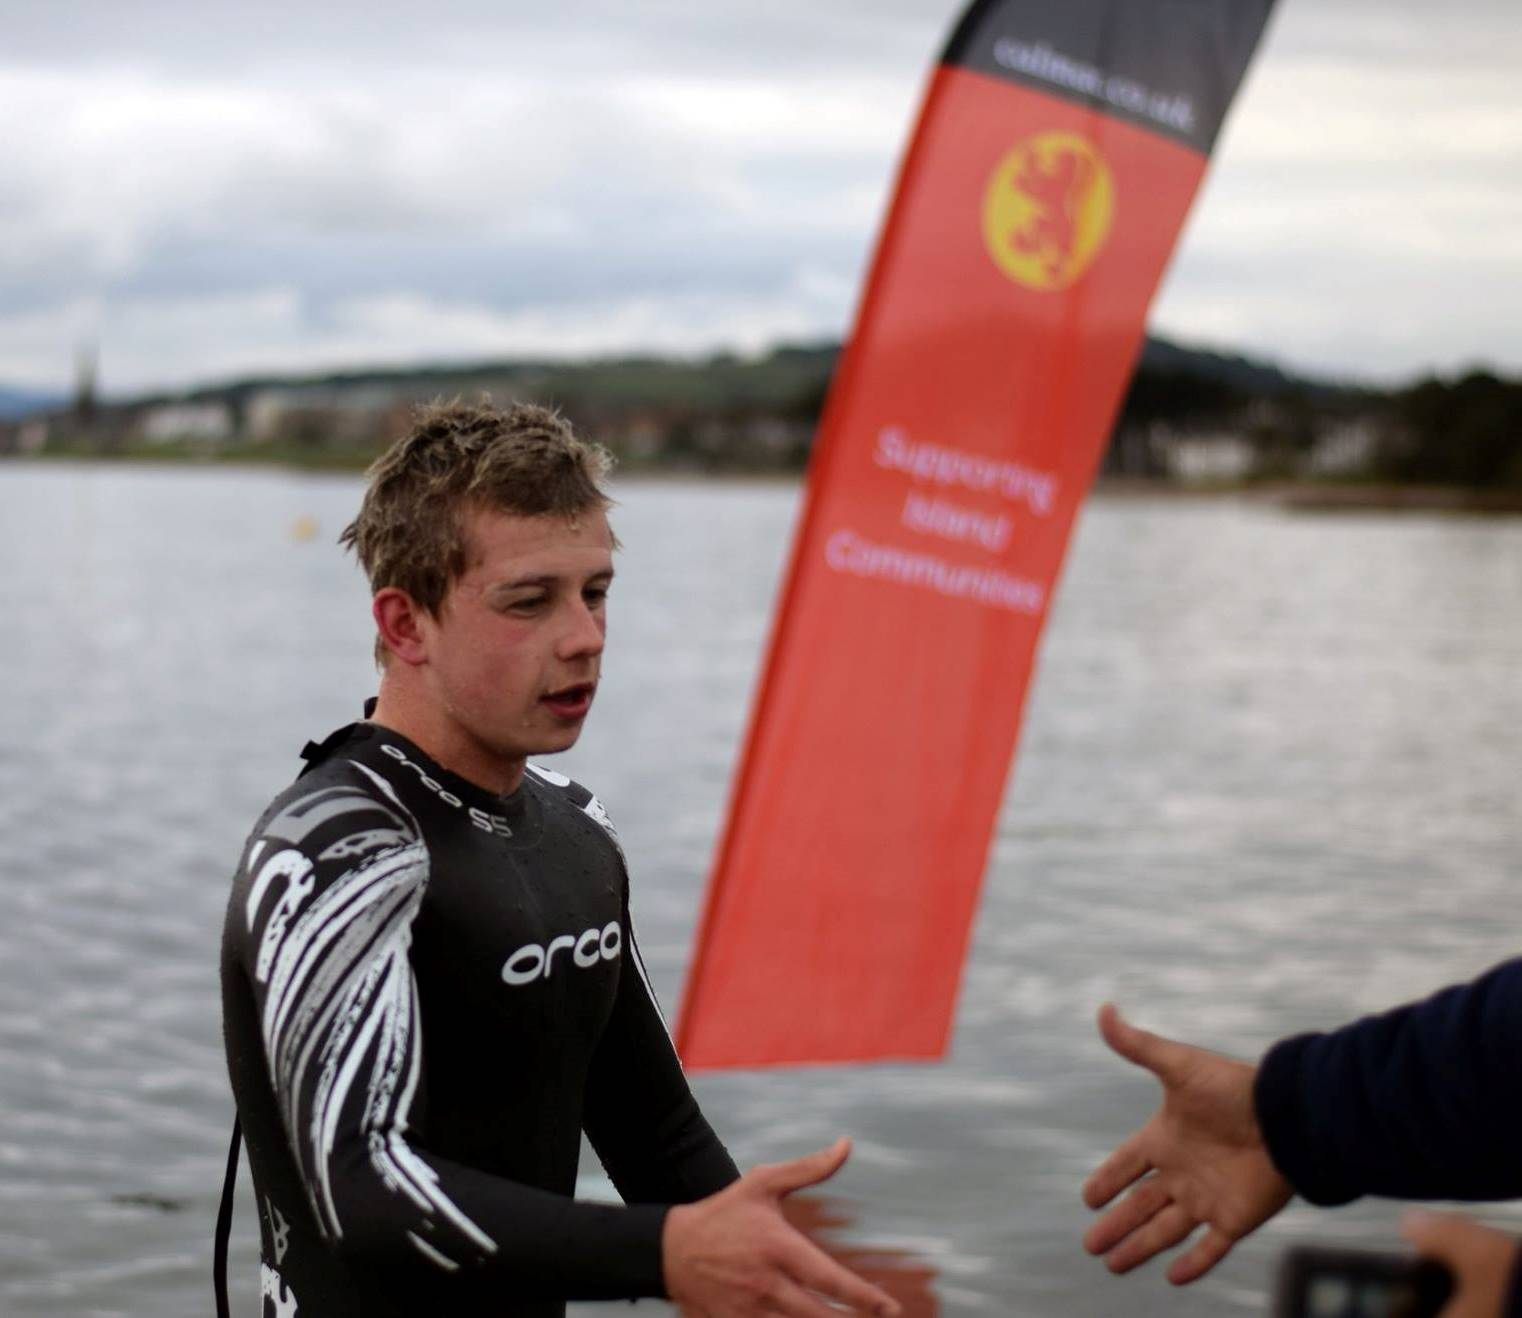 Get ready for Saltire swim from Cumbrae to Largs!